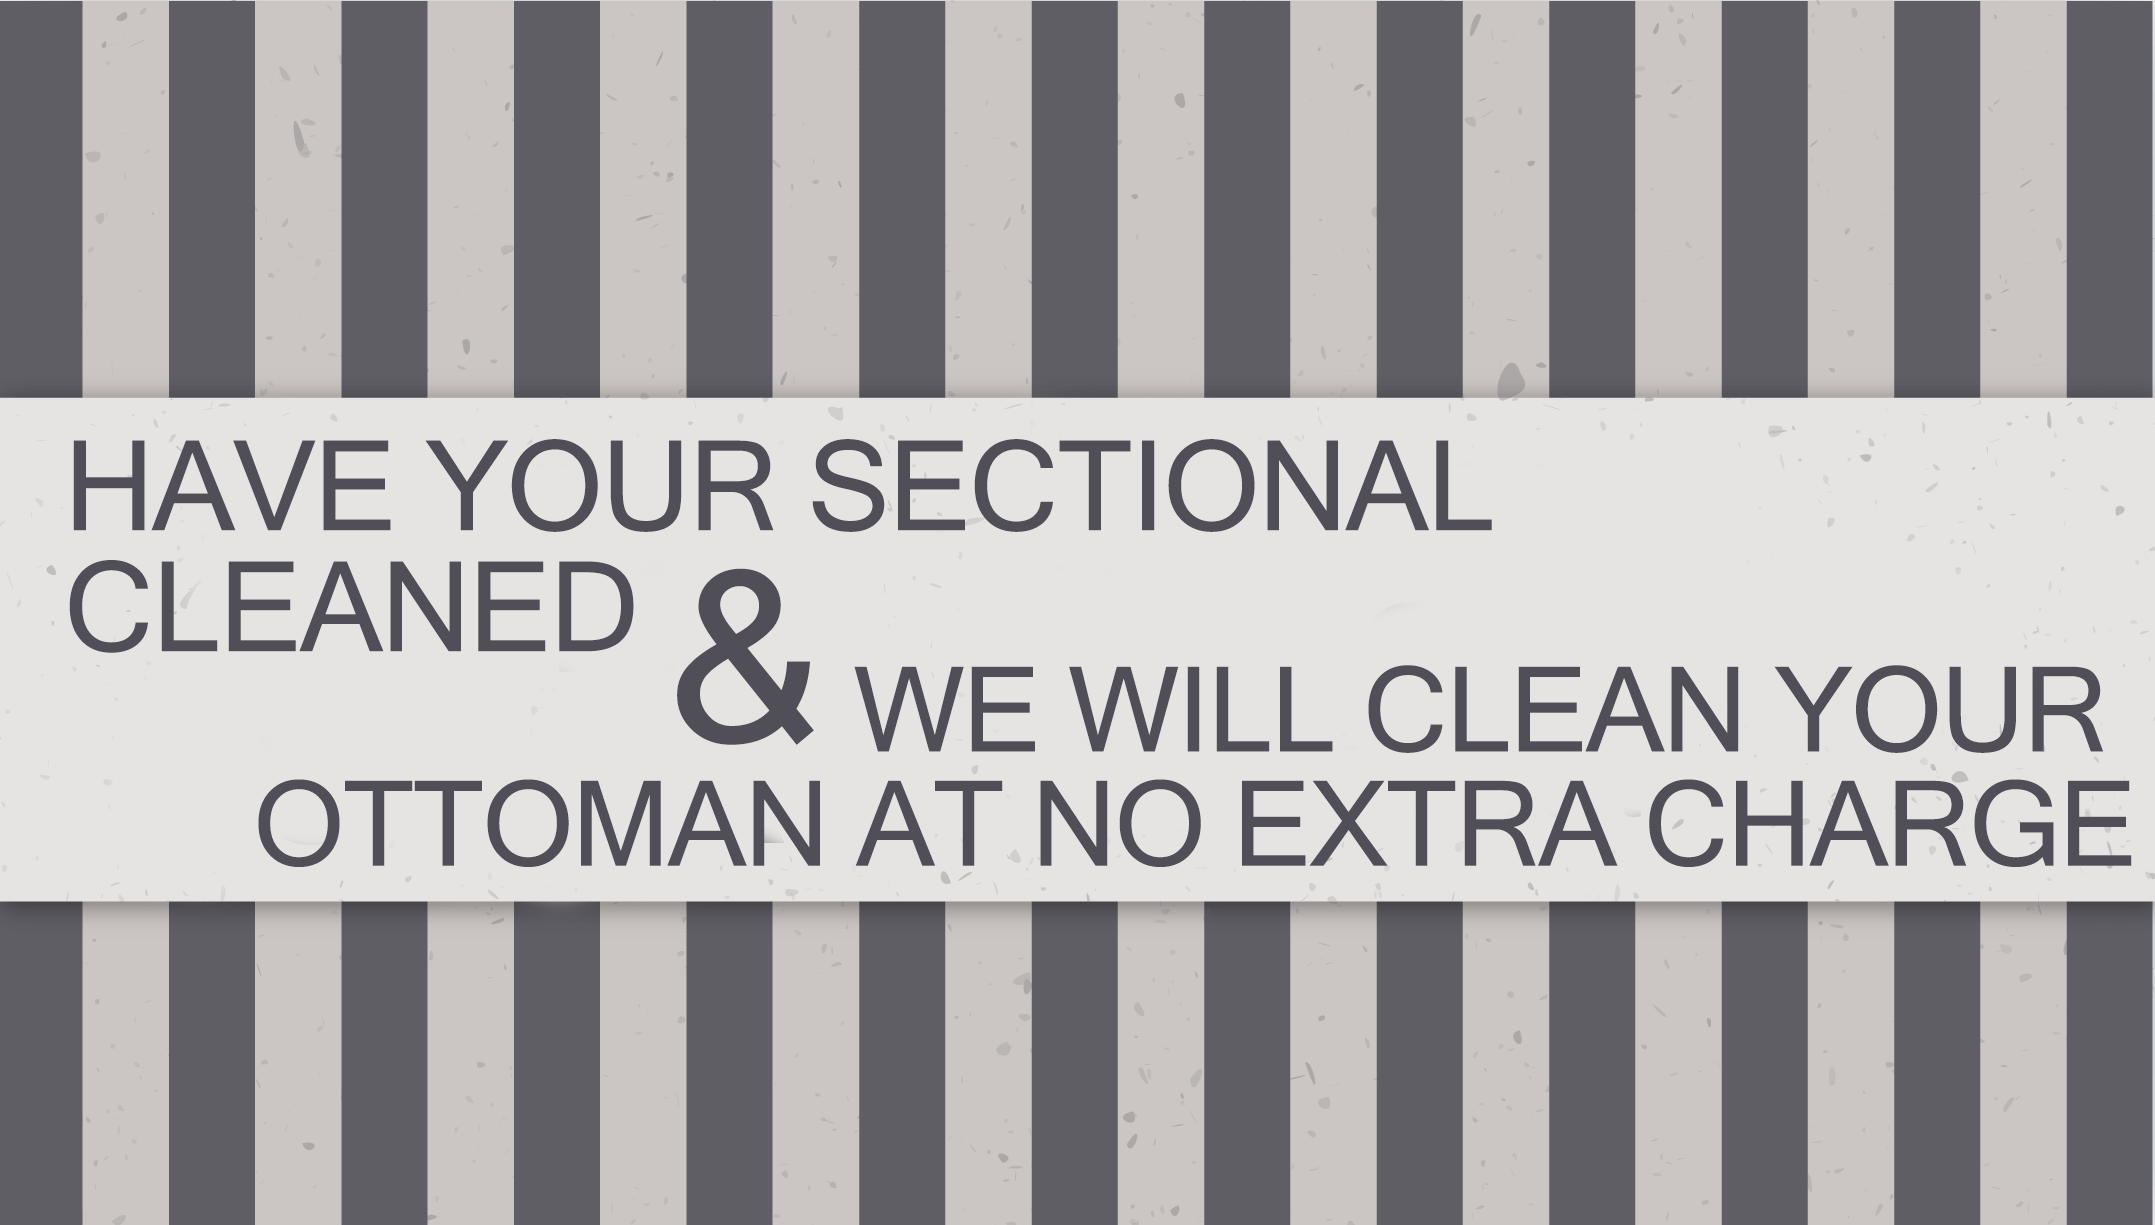 HAVE YOUR SECTIONAL CLEANED and WE WILL CLEAN YOUR OTTOMAN AT NO EXTRA CHARGE